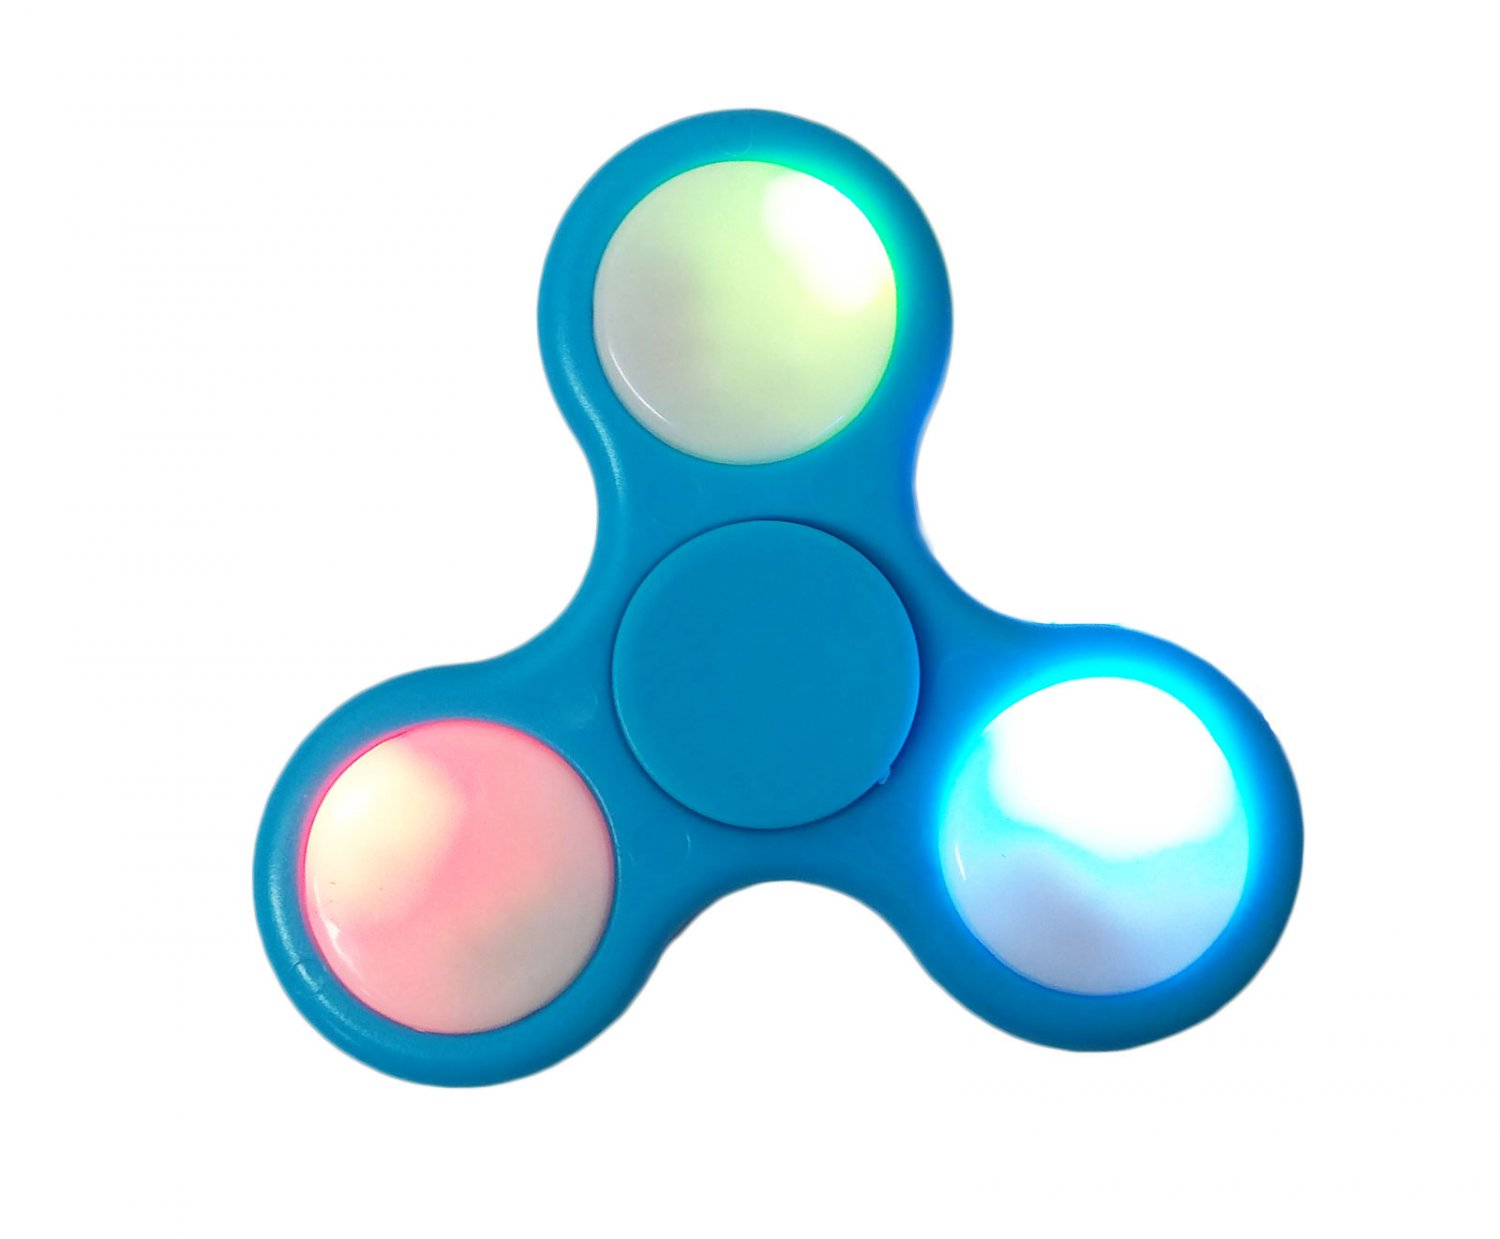 LED Light Show Tri-Spinner Fidget Toy Hand Spinner Anxiety and Stress Relief ADHD Focus Toy, Blue